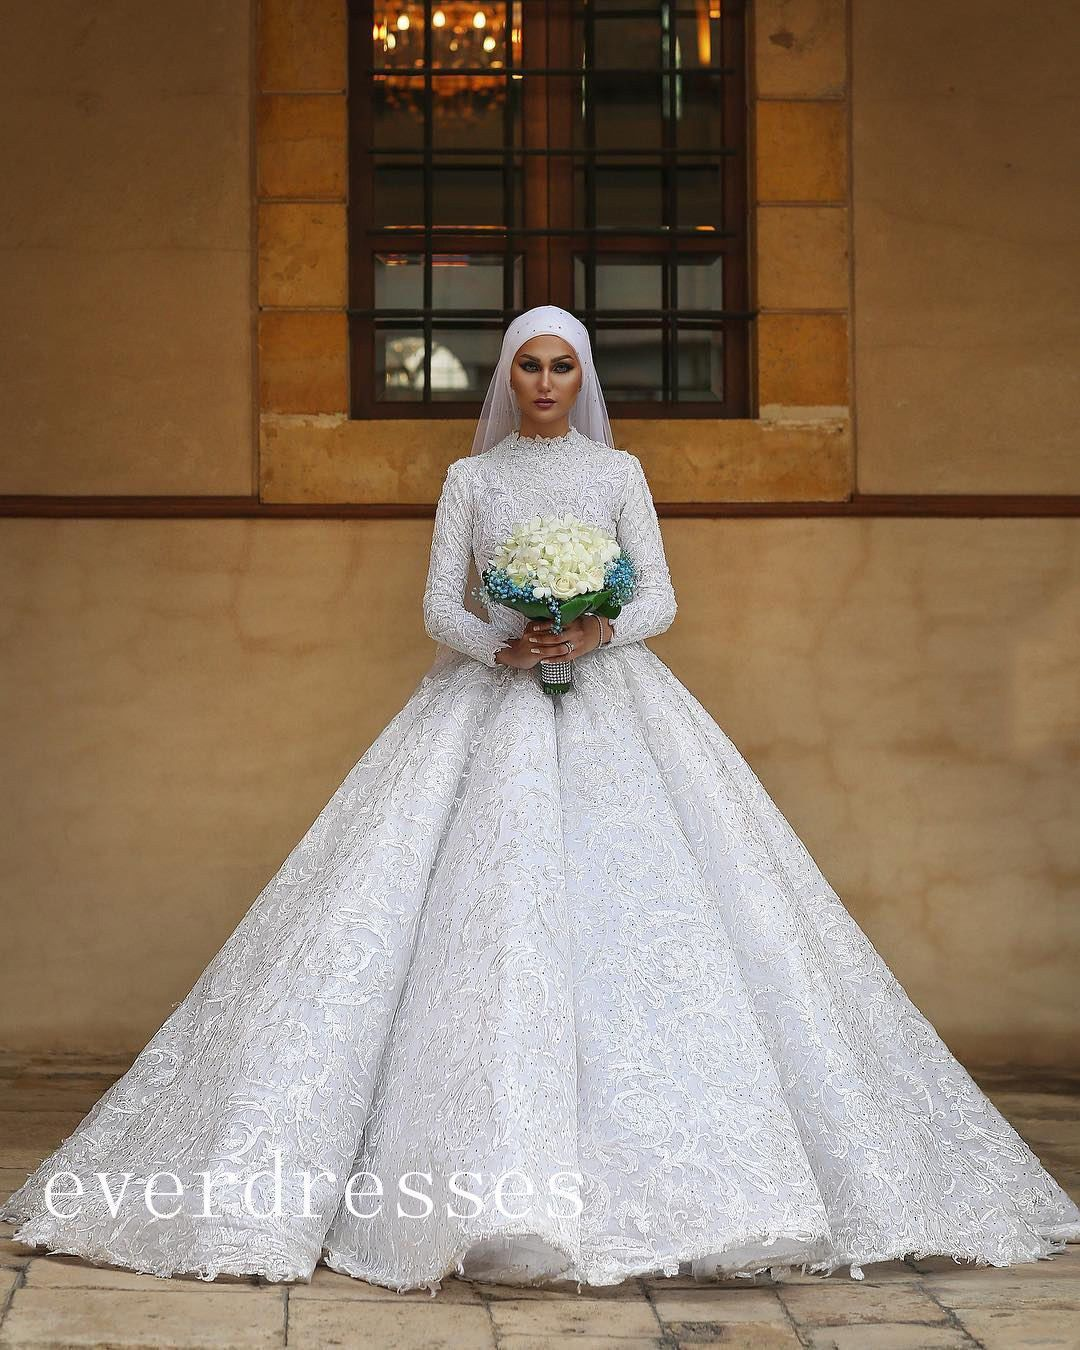 Wedding decorations muslim october 2018 Cool Amazing Luxury Muslim Wedding Bridal Dress Ball Gown Aline